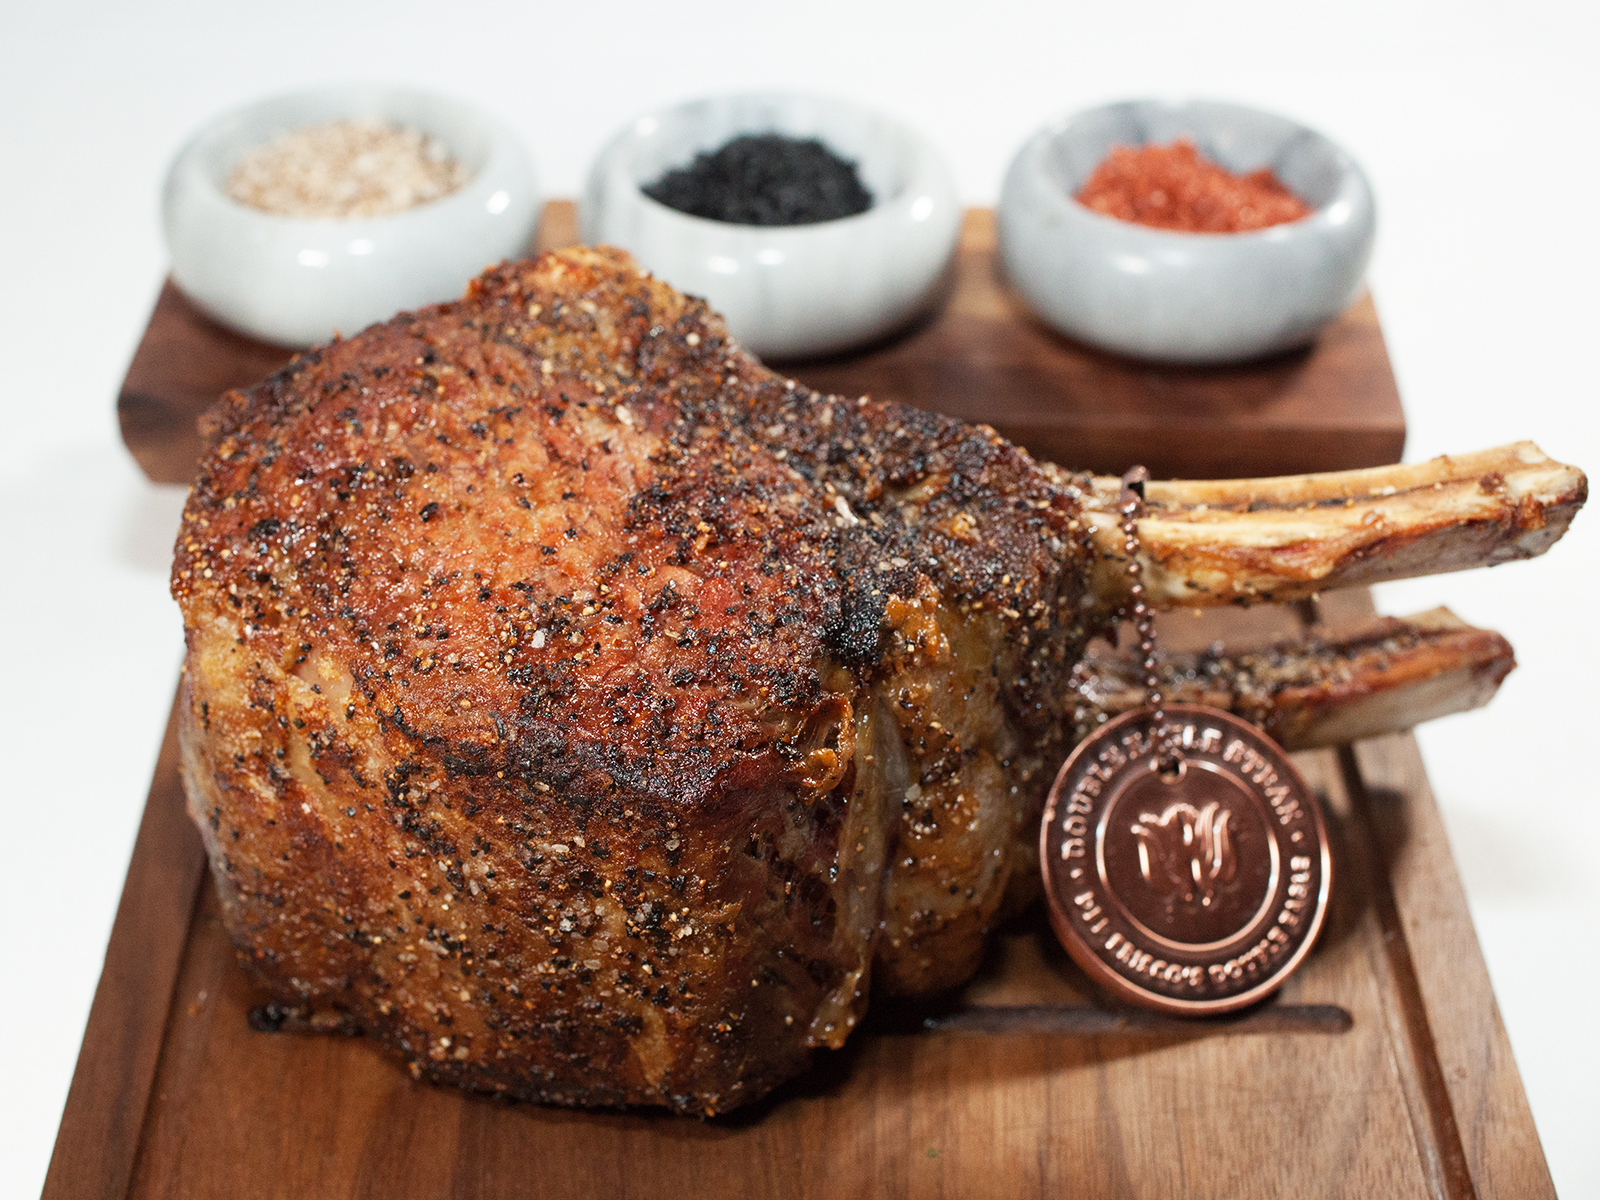 del friscos steakhouse in new york olympic experience